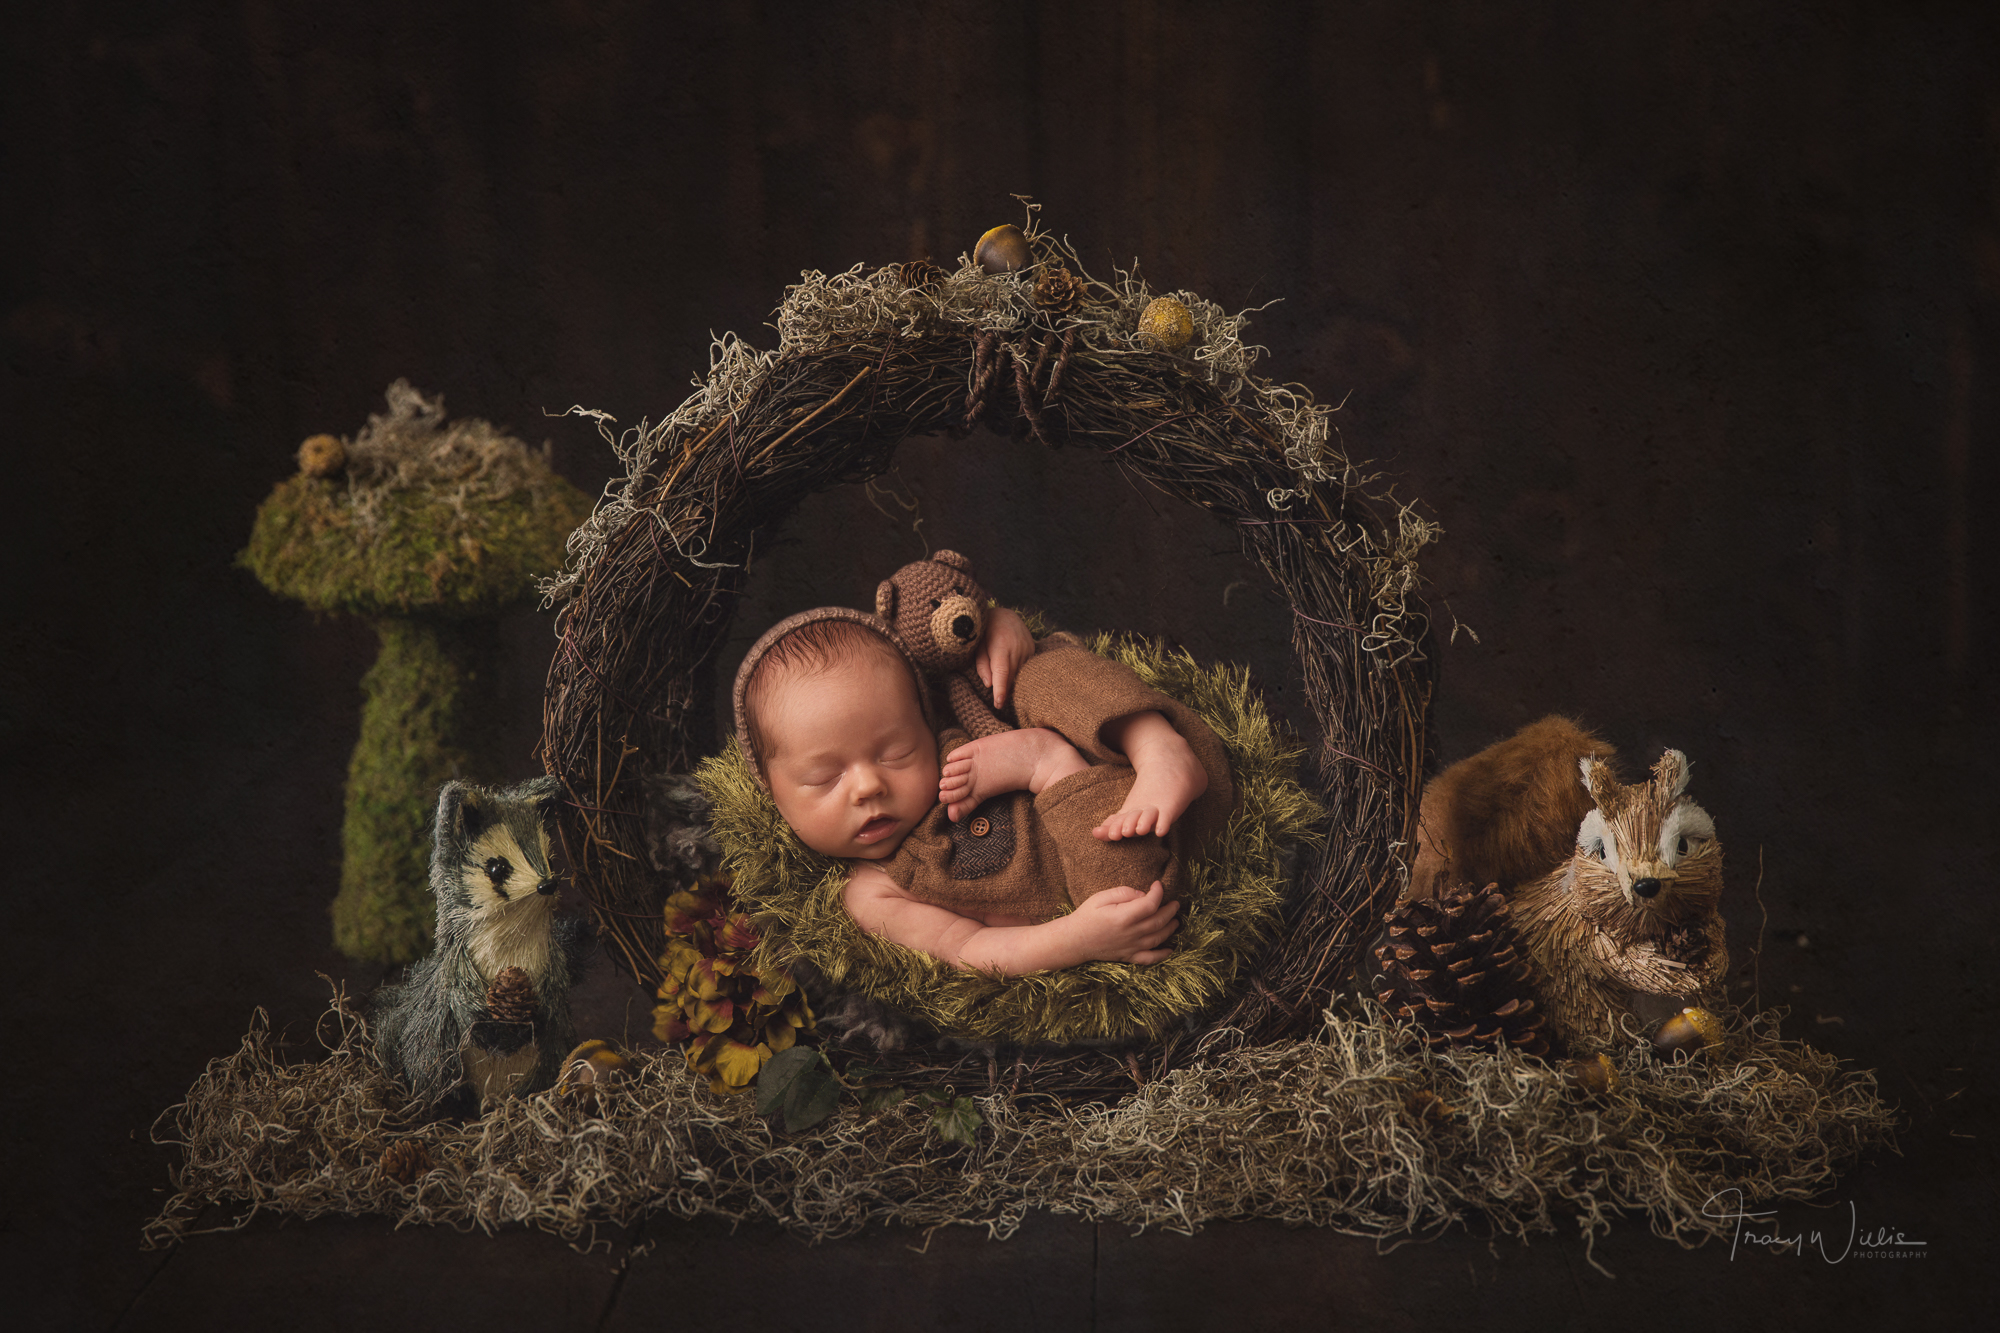 Newborn and baby photography and training